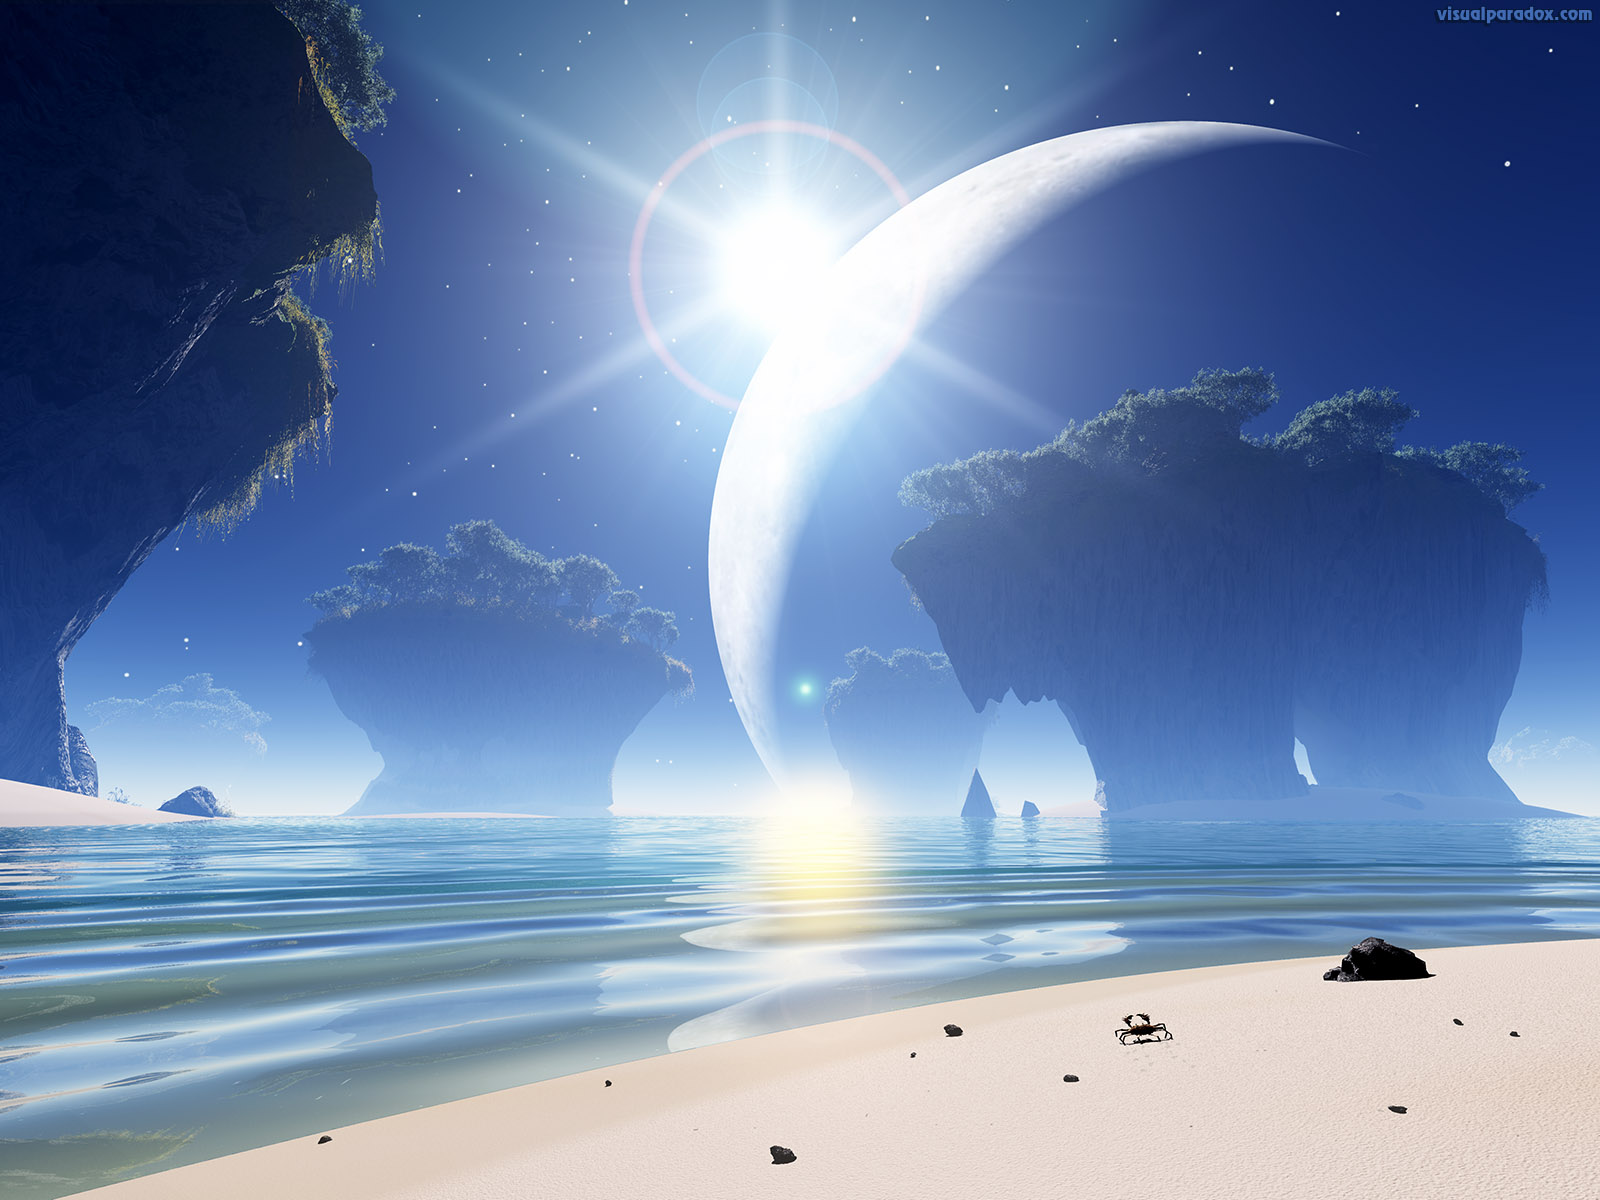 crab, alien, moon, ocean, sea, waves, erosion, star, shine, lens flare, 3d, wallpaper